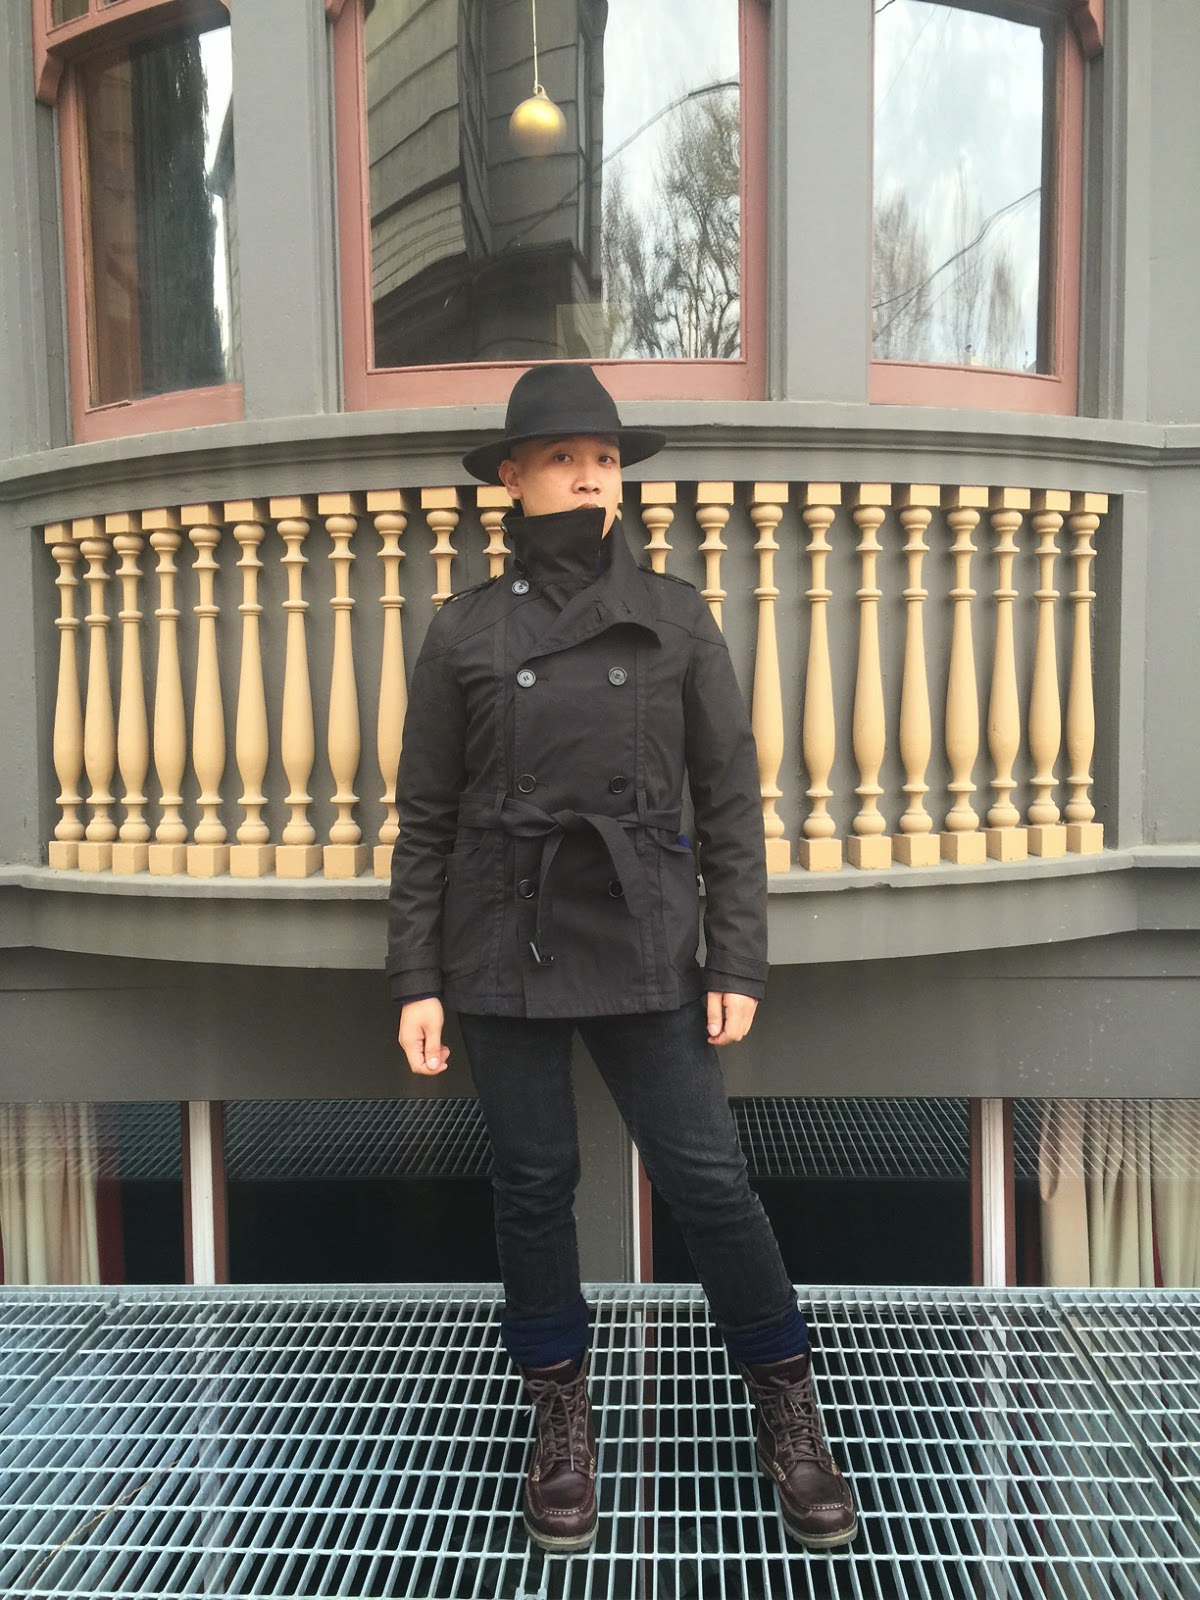 outfit of the day, portland fashion, street style, black trench coat, black hat, black boots, burgundy coat, white sweater, gray jeans, ptowngirls, portland blogger